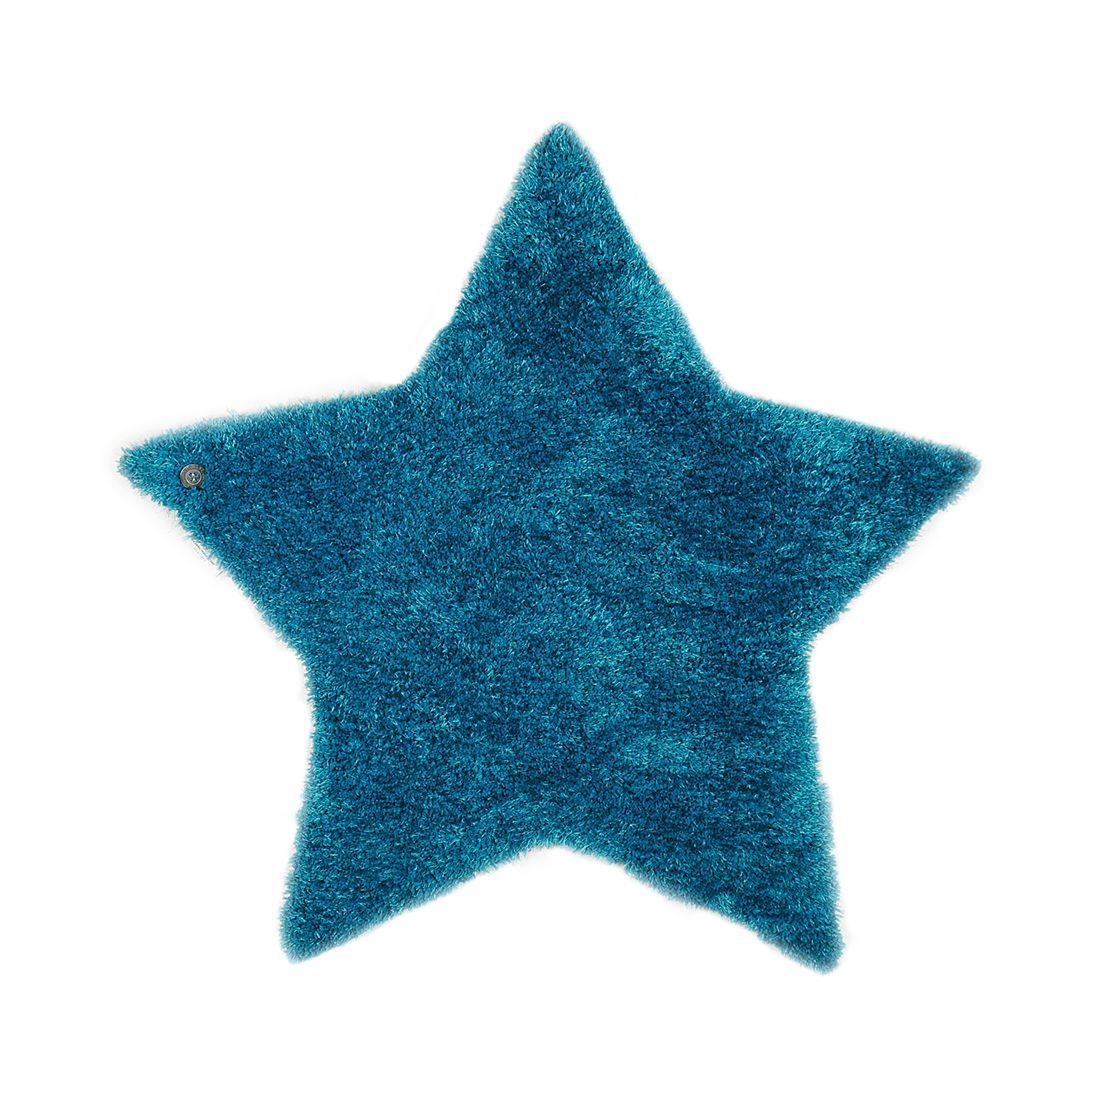 Home 24 - Tapis soft star - turquoise - 100 x 100 cm, tom tailor